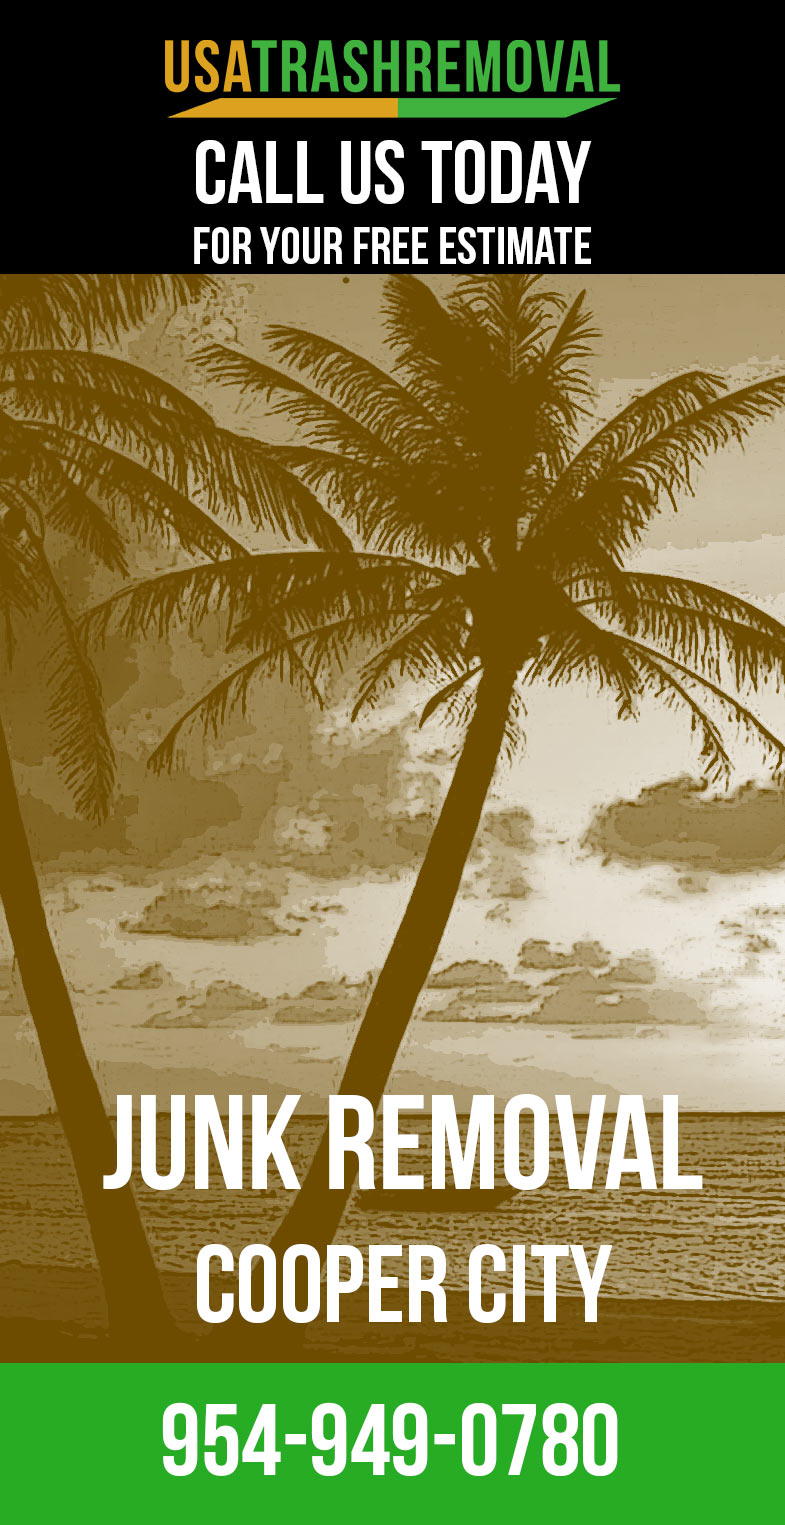 Junk Removal Cooper City